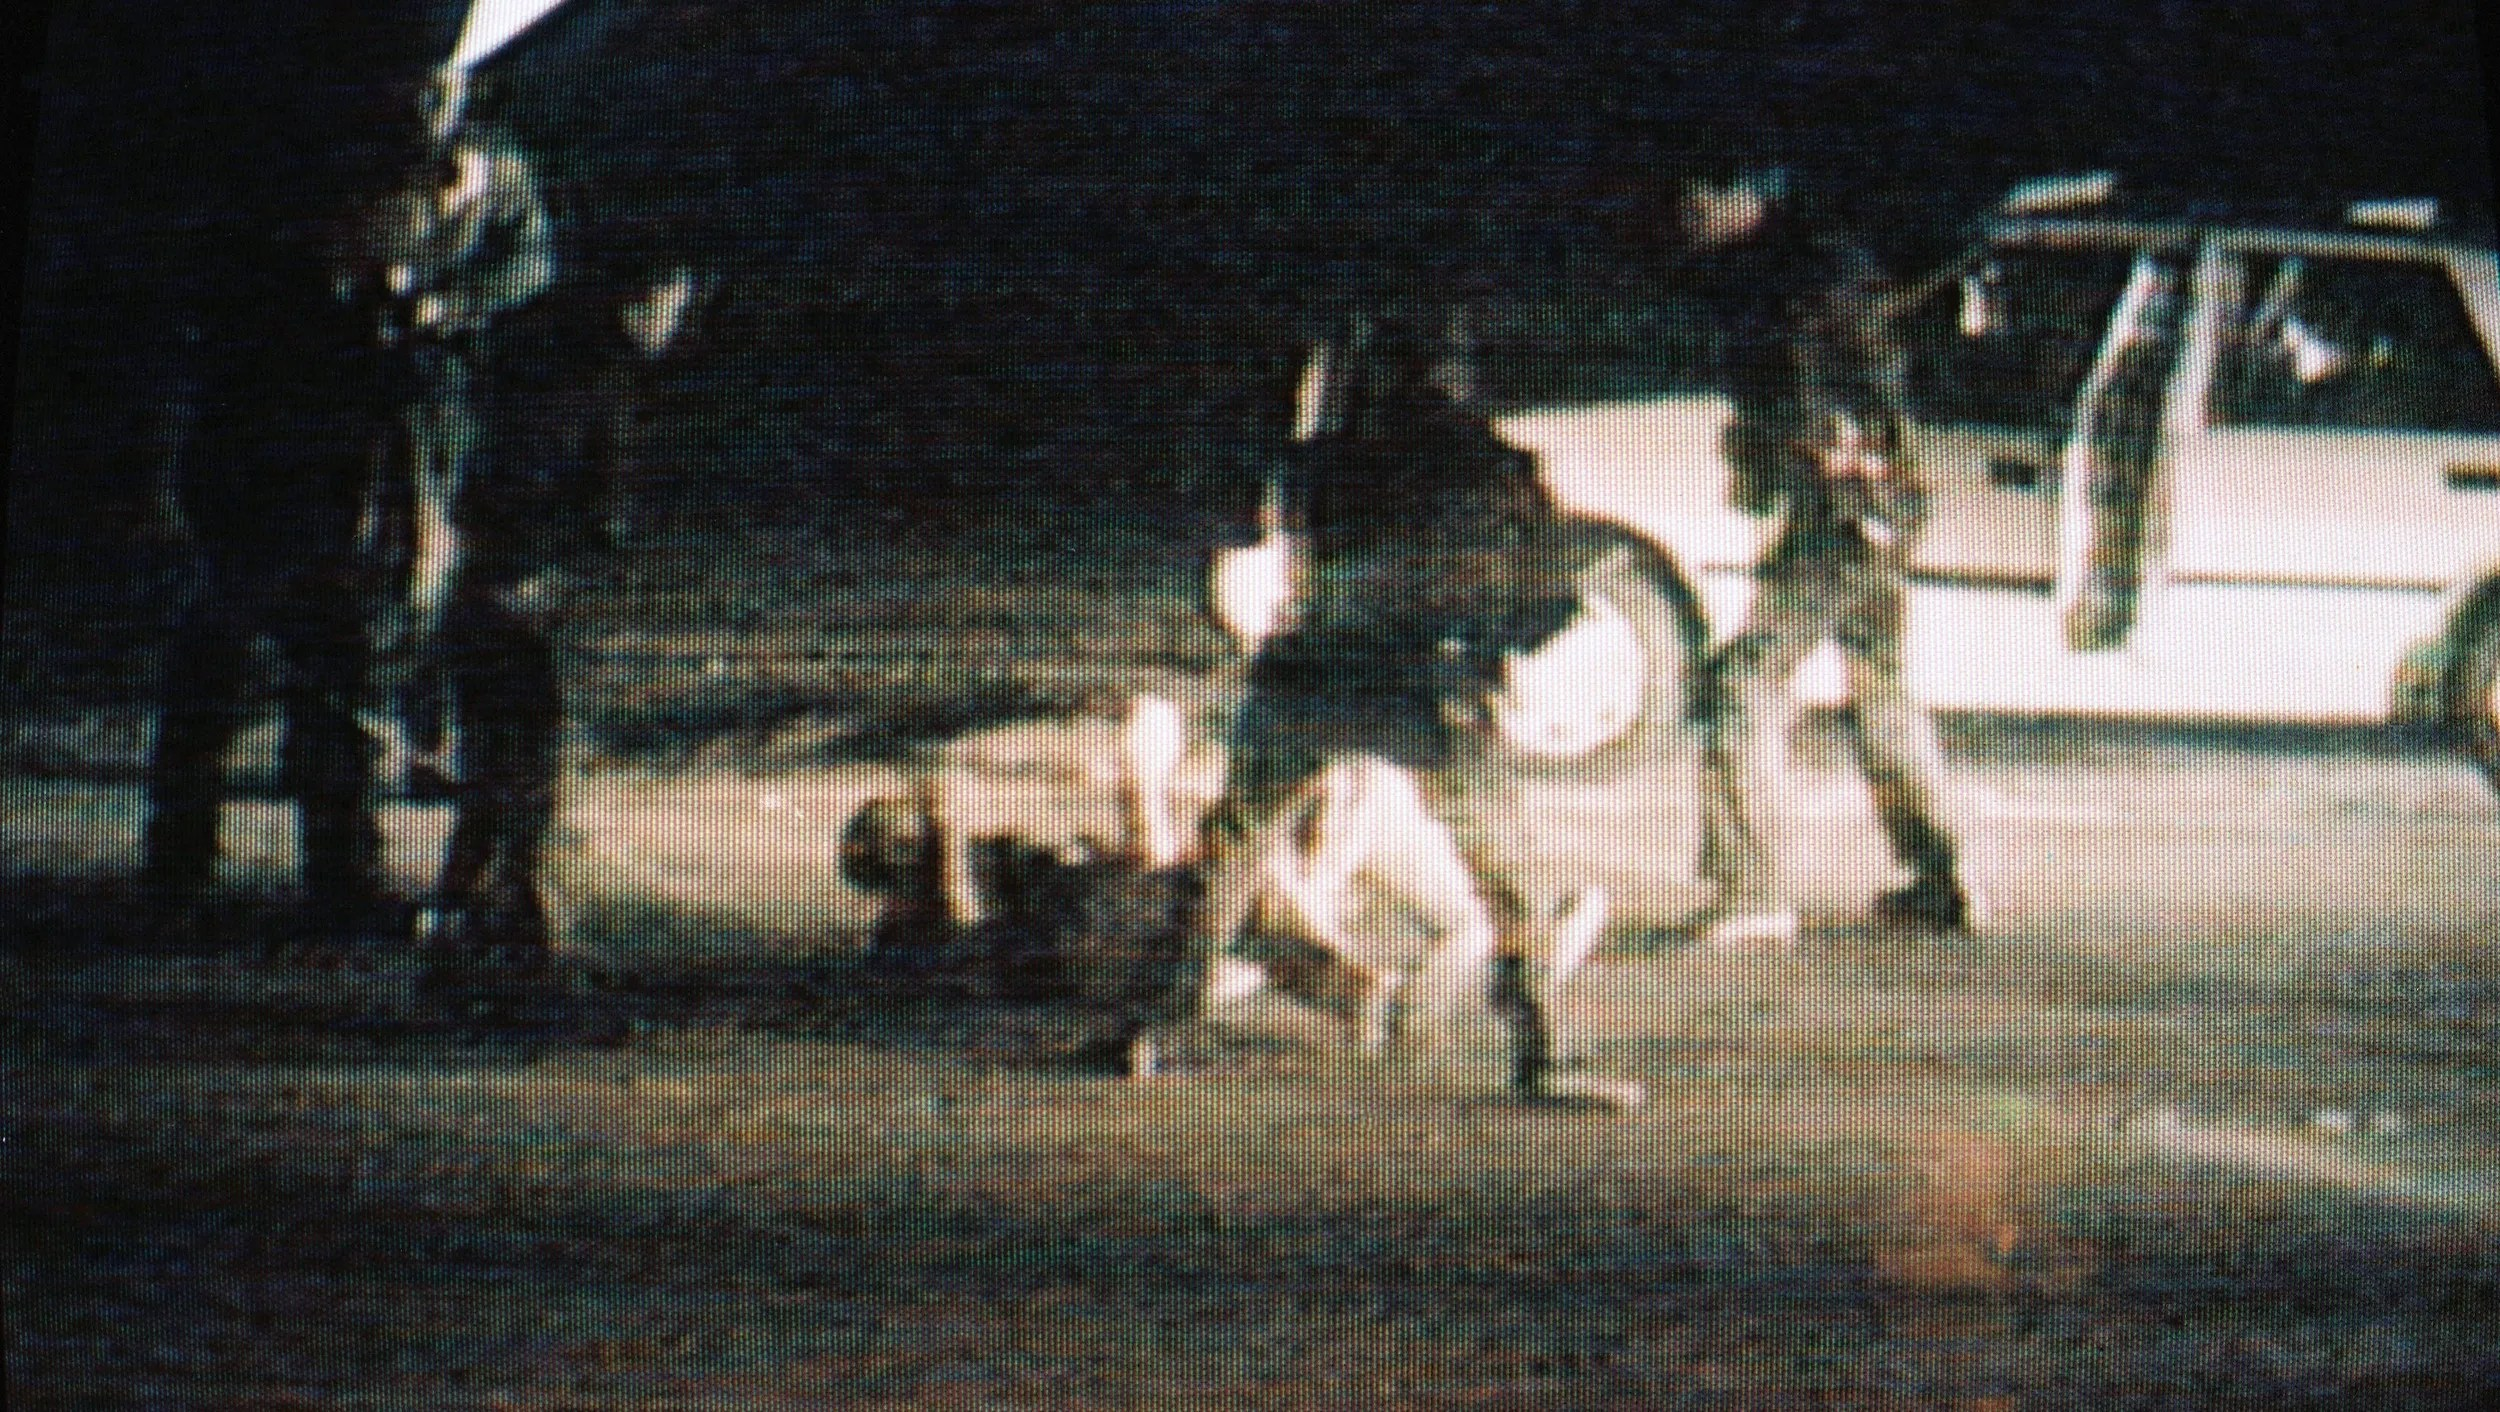 On March 15, 1991, CBS aired footage of the Rodney King beating that occurred earlier that month in Los Angeles.